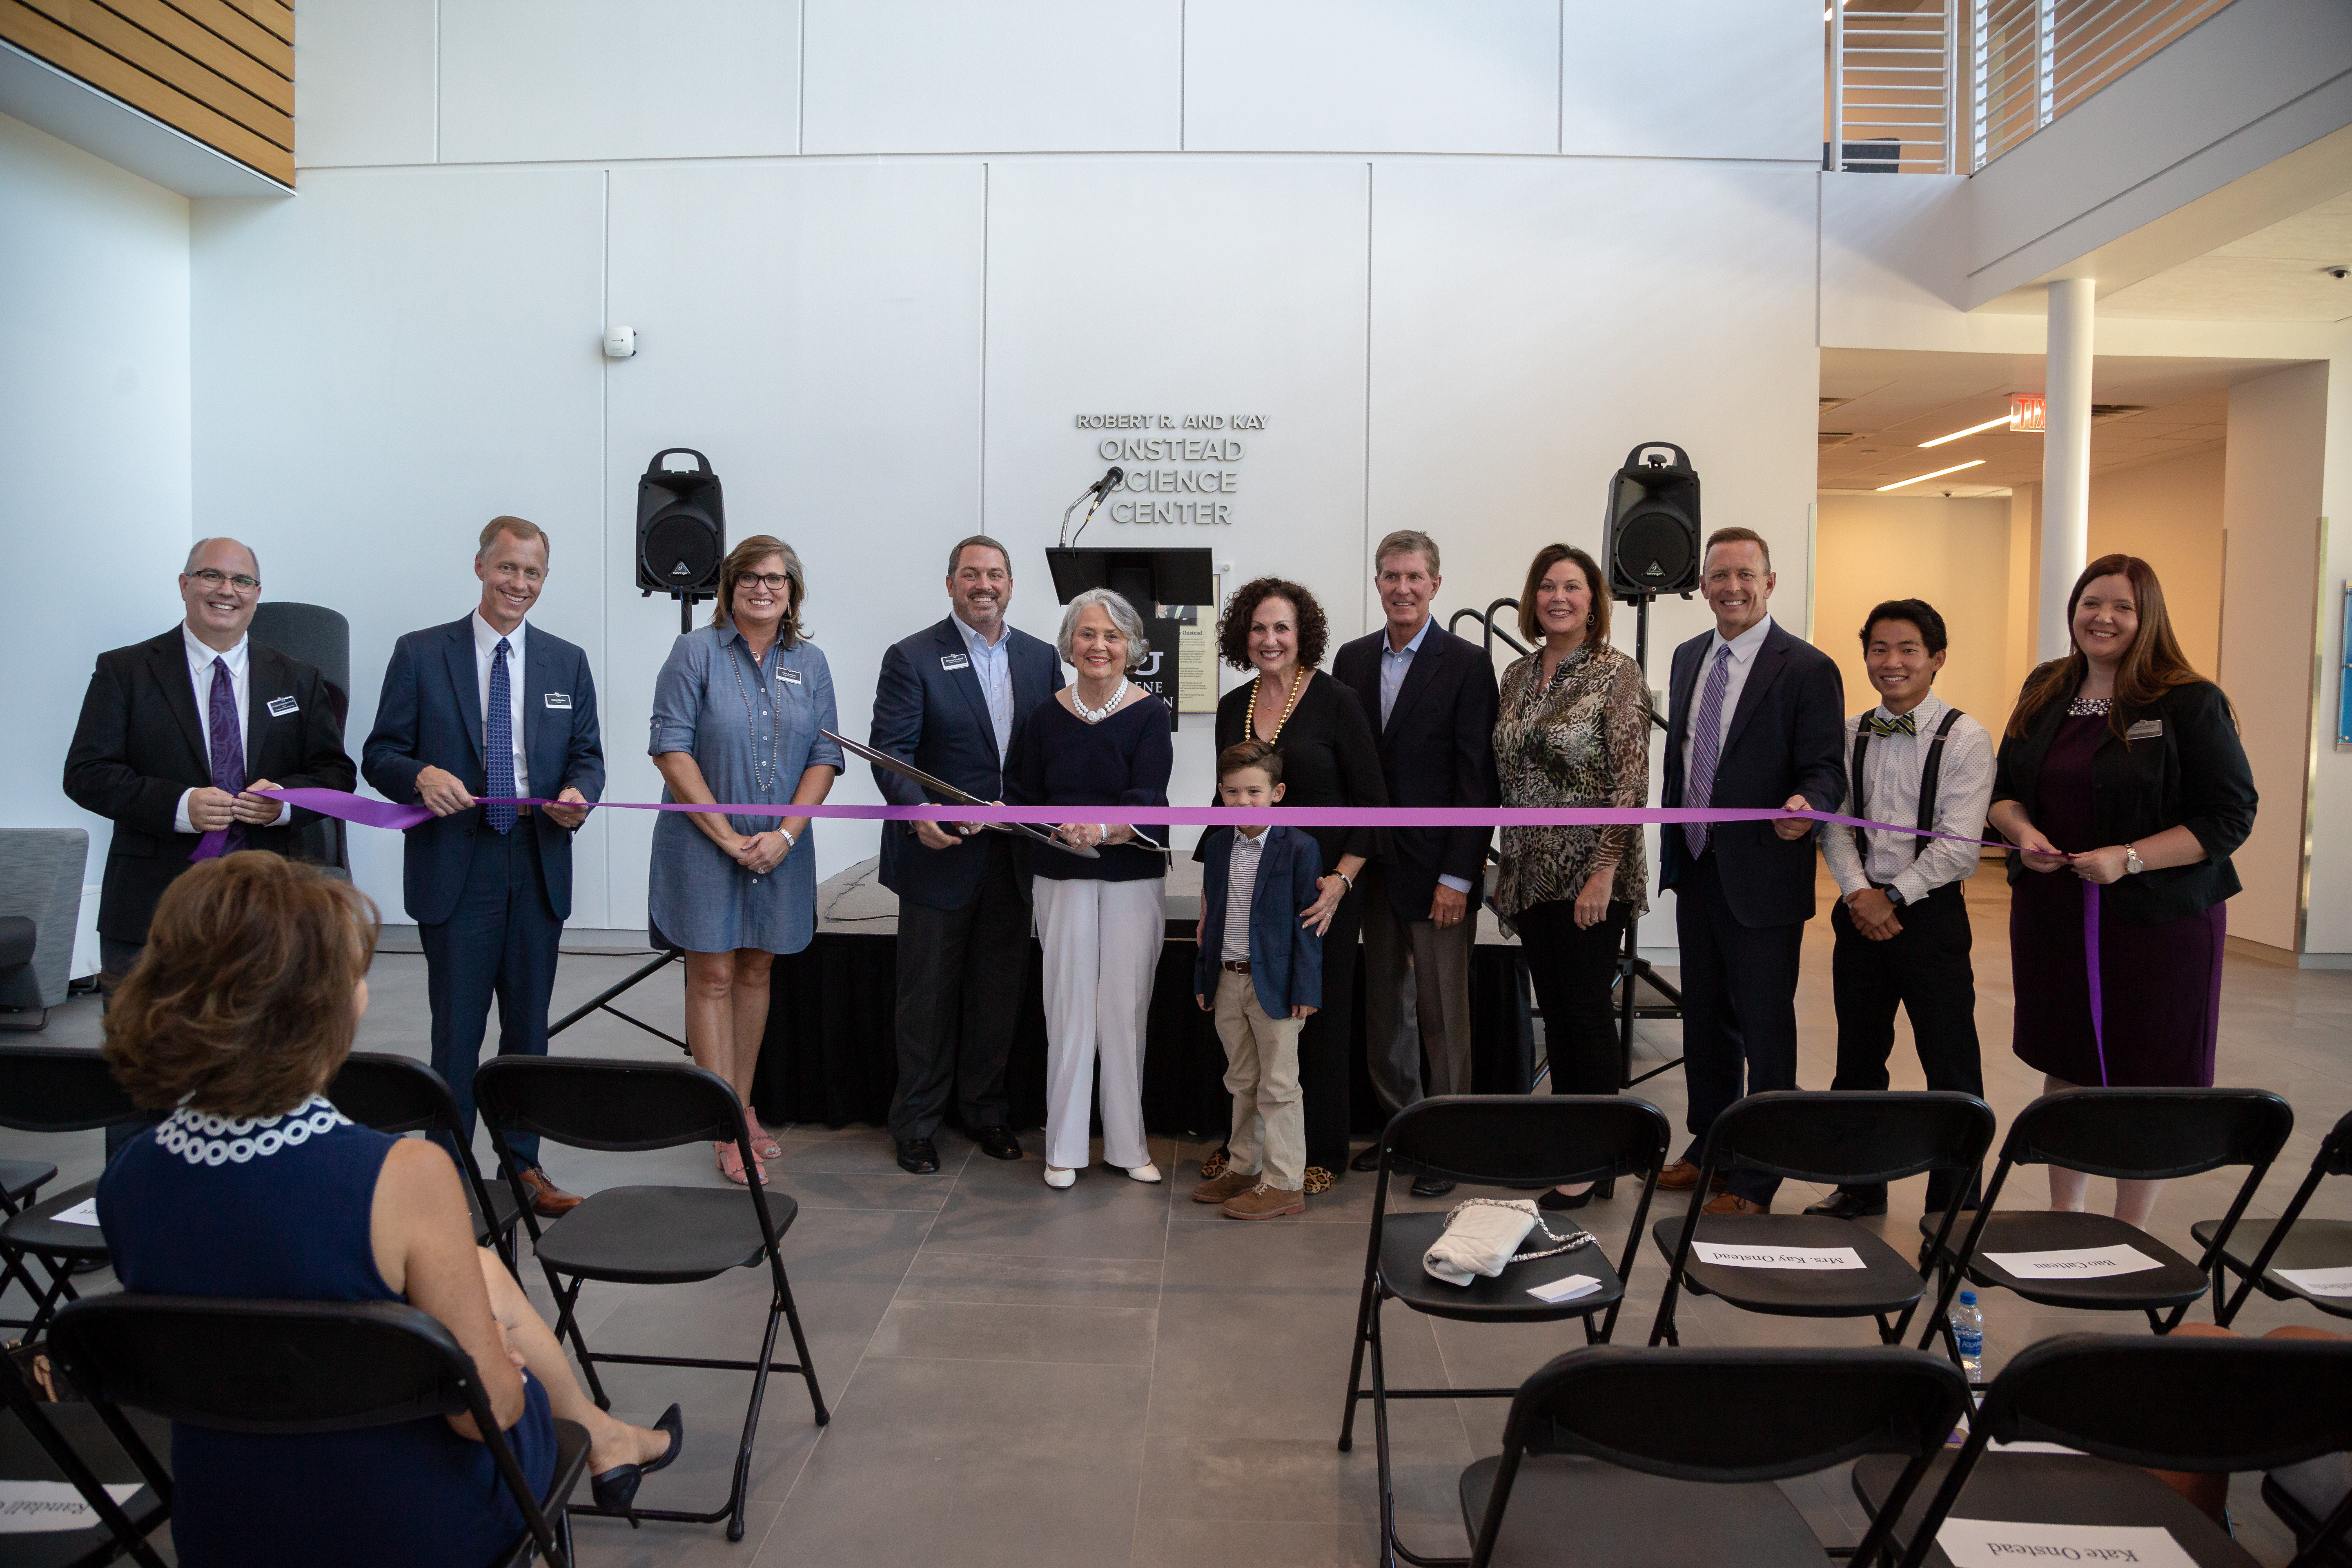 The opening of the Robert R. and Kay Onstead Science Center featured the cutting of a ceremonial ribbon. Pictured from left: Dr. Gregory Straughn, dean of the College of Arts and Sciences; Dr. Robert Rhodes, provost; April Anthony, chair of the Board of Trustees; Charlie Onstead; Kay Onstead; Ann Hill; Randall Onstead; Mary Onstead; Dr. Phil Schubert, president; Bao Catteau, sophomore; and Dr. Autumn Sutherlin, assistant dean of the College of Arts and Sciences.